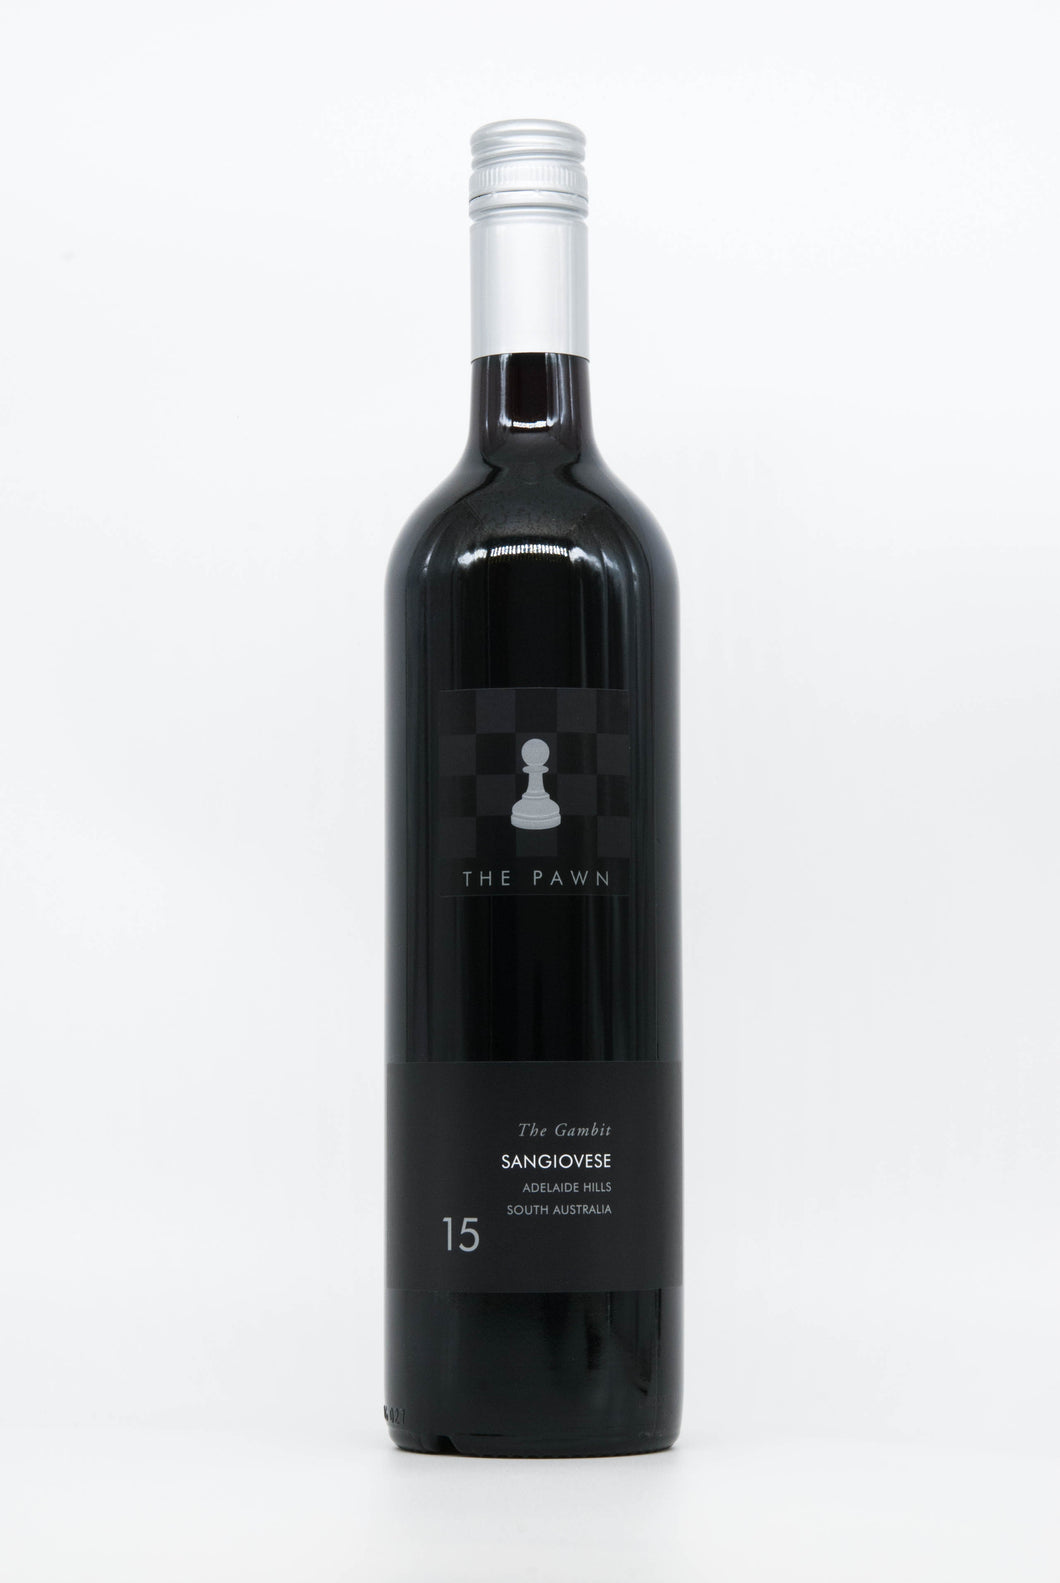 THE PAWN WINE CO. - The Gambit Sangiovese